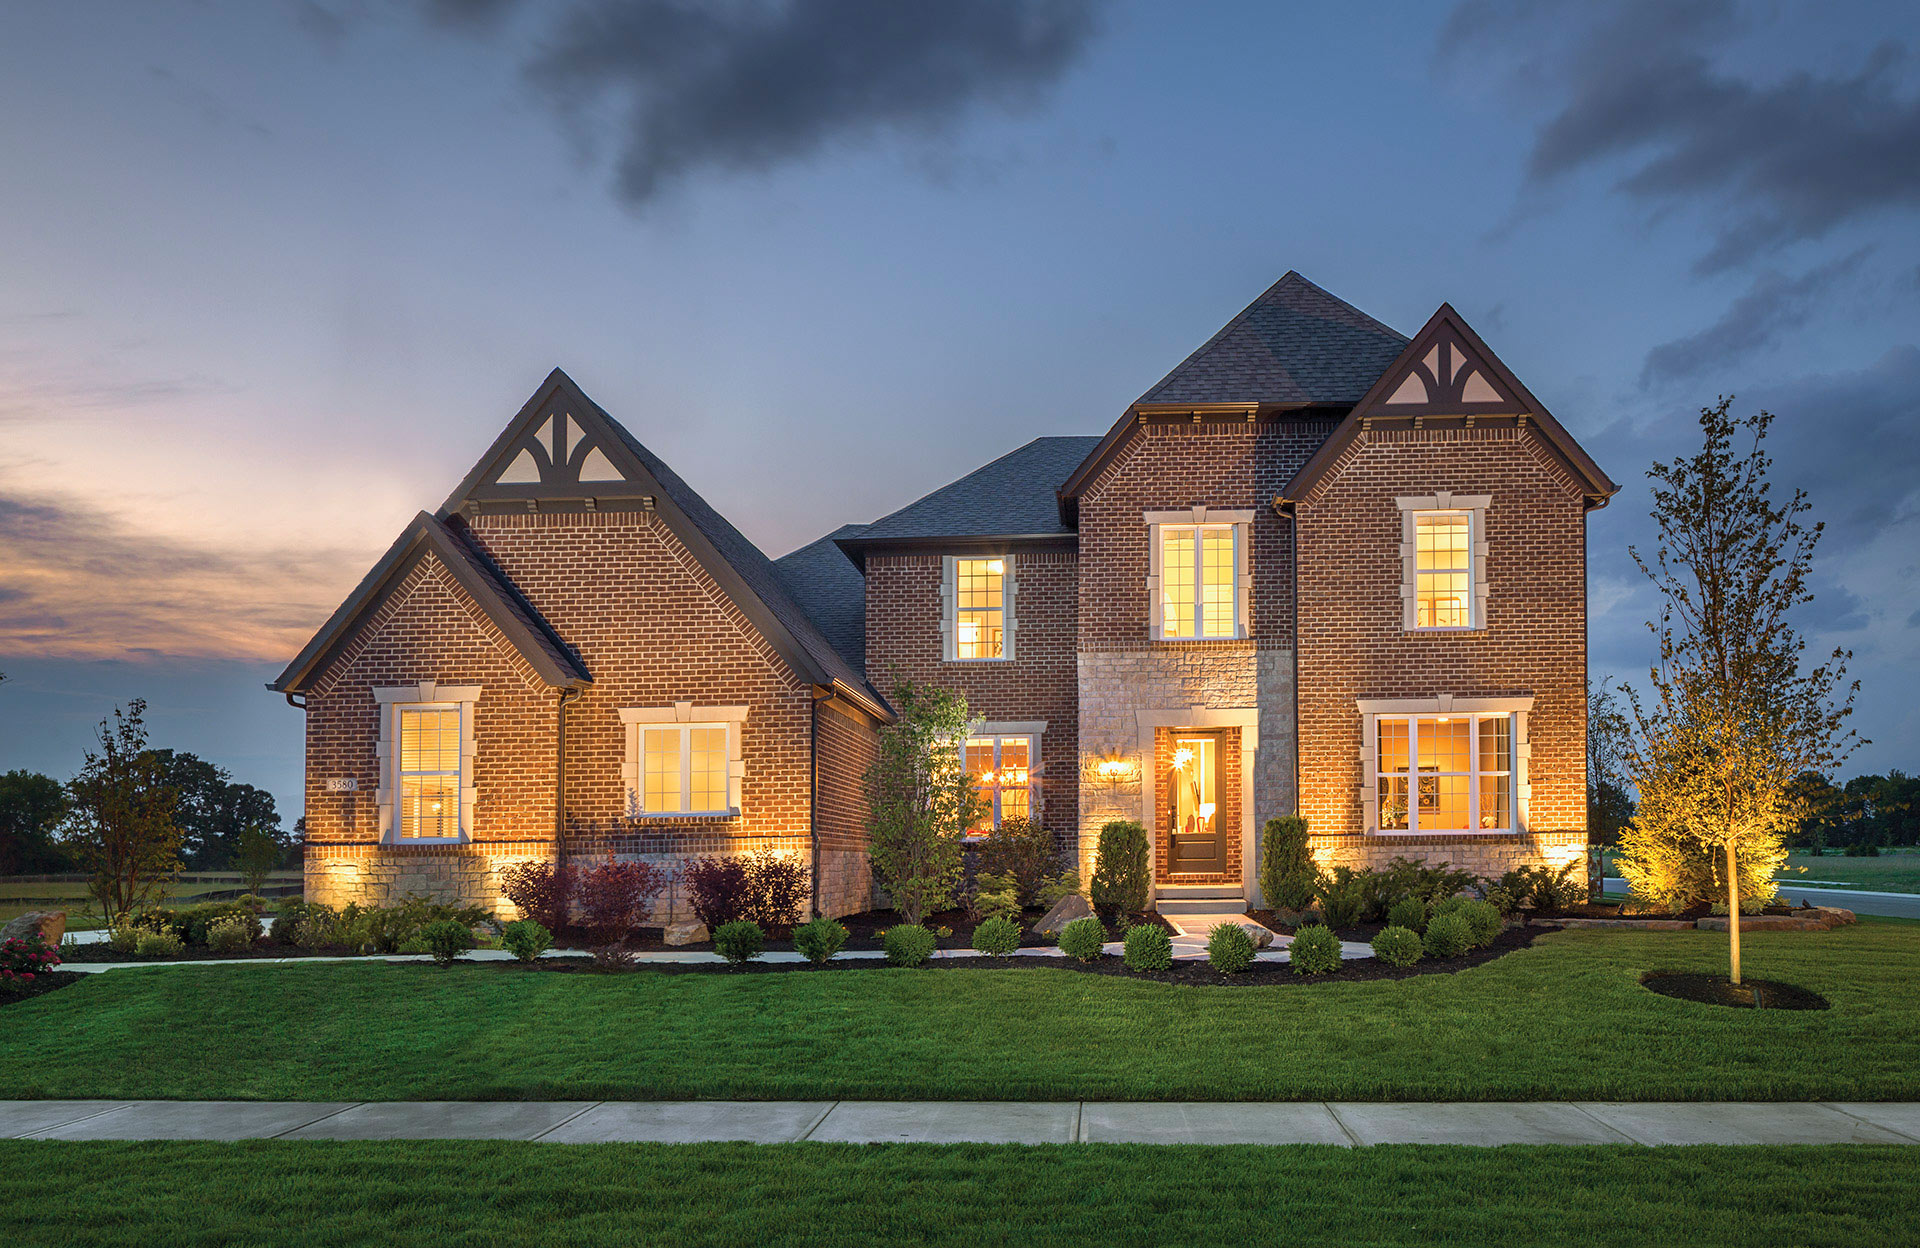 Custom Homes Made Easy | Drees Homes on d.r. horton design center, kb home design center, toll brothers design center,